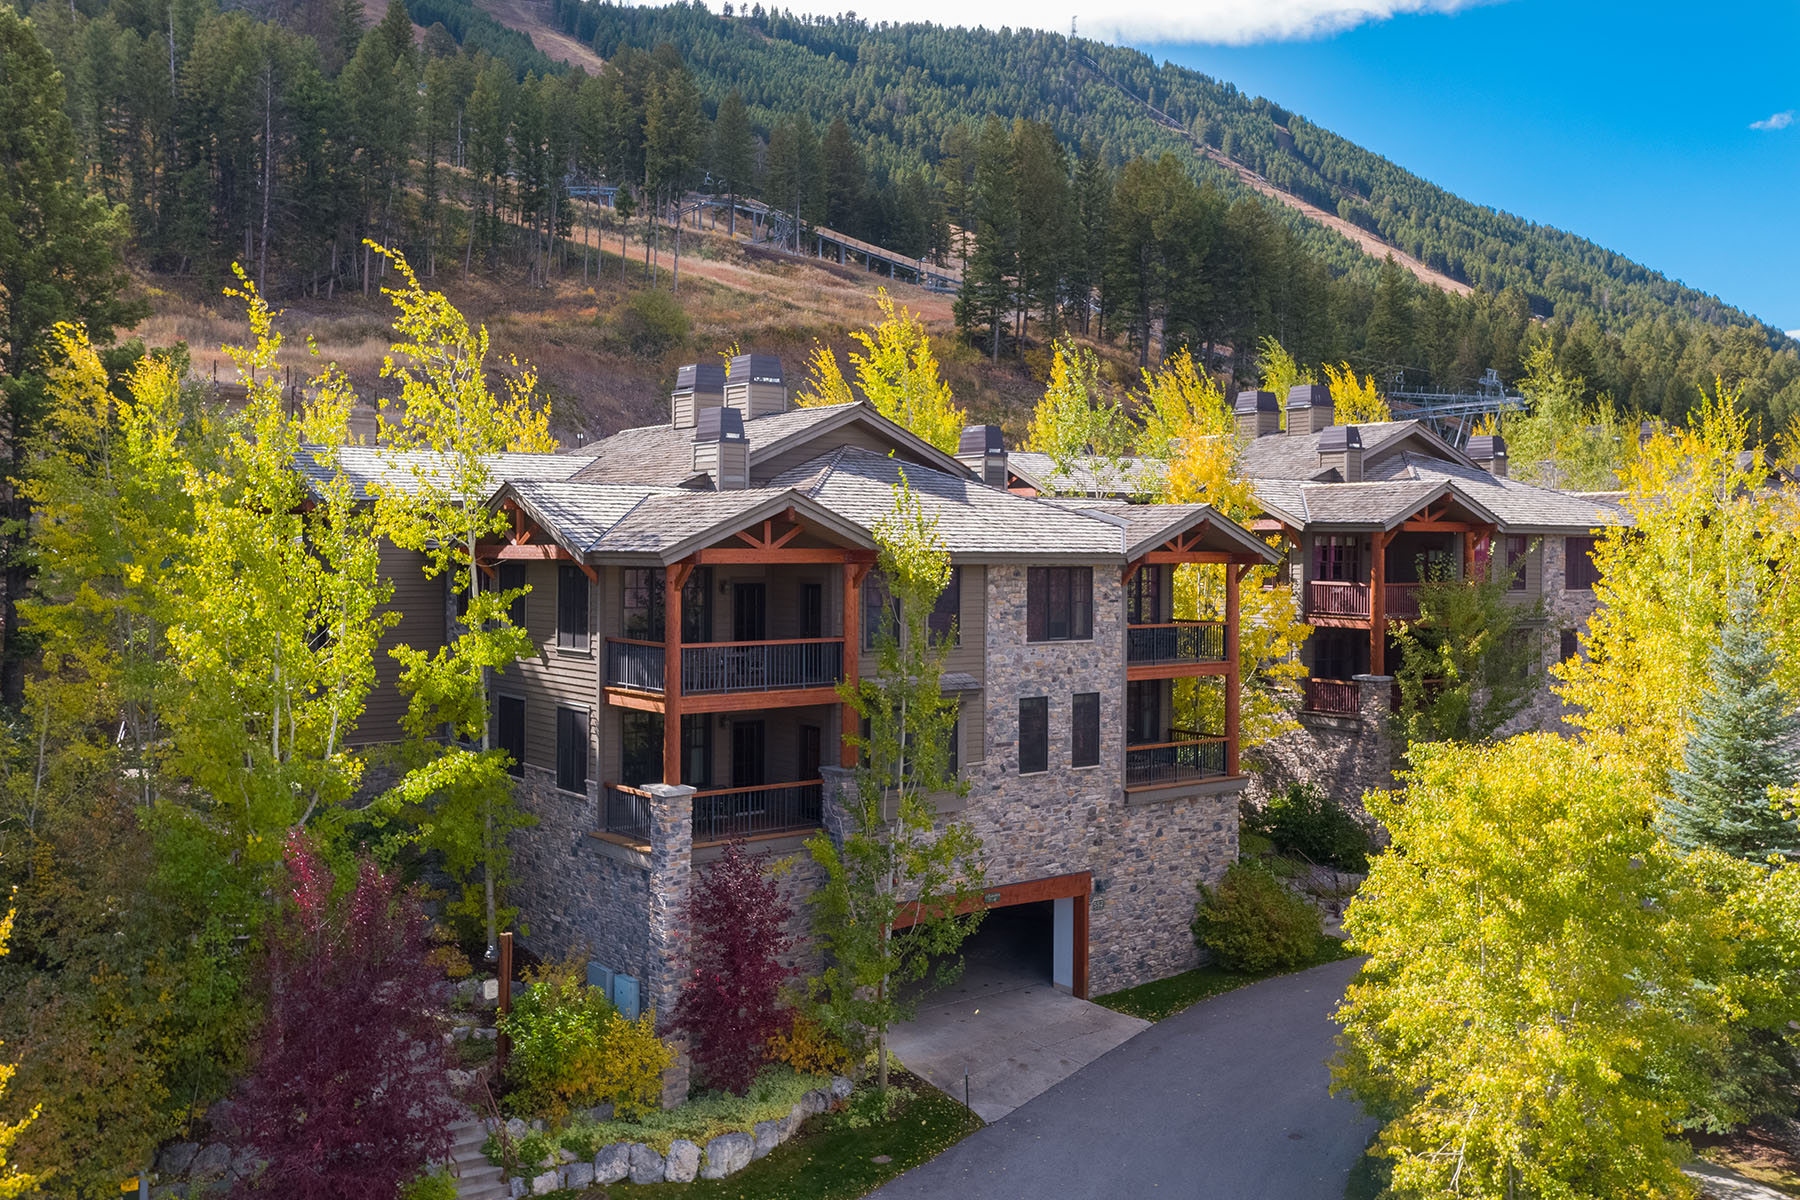 Copropriété pour l Vente à Grand View Condo at Snow King Resort 552 Snow King Loop # 521, Jackson, Wyoming, 83001 Jackson Hole, États-Unis